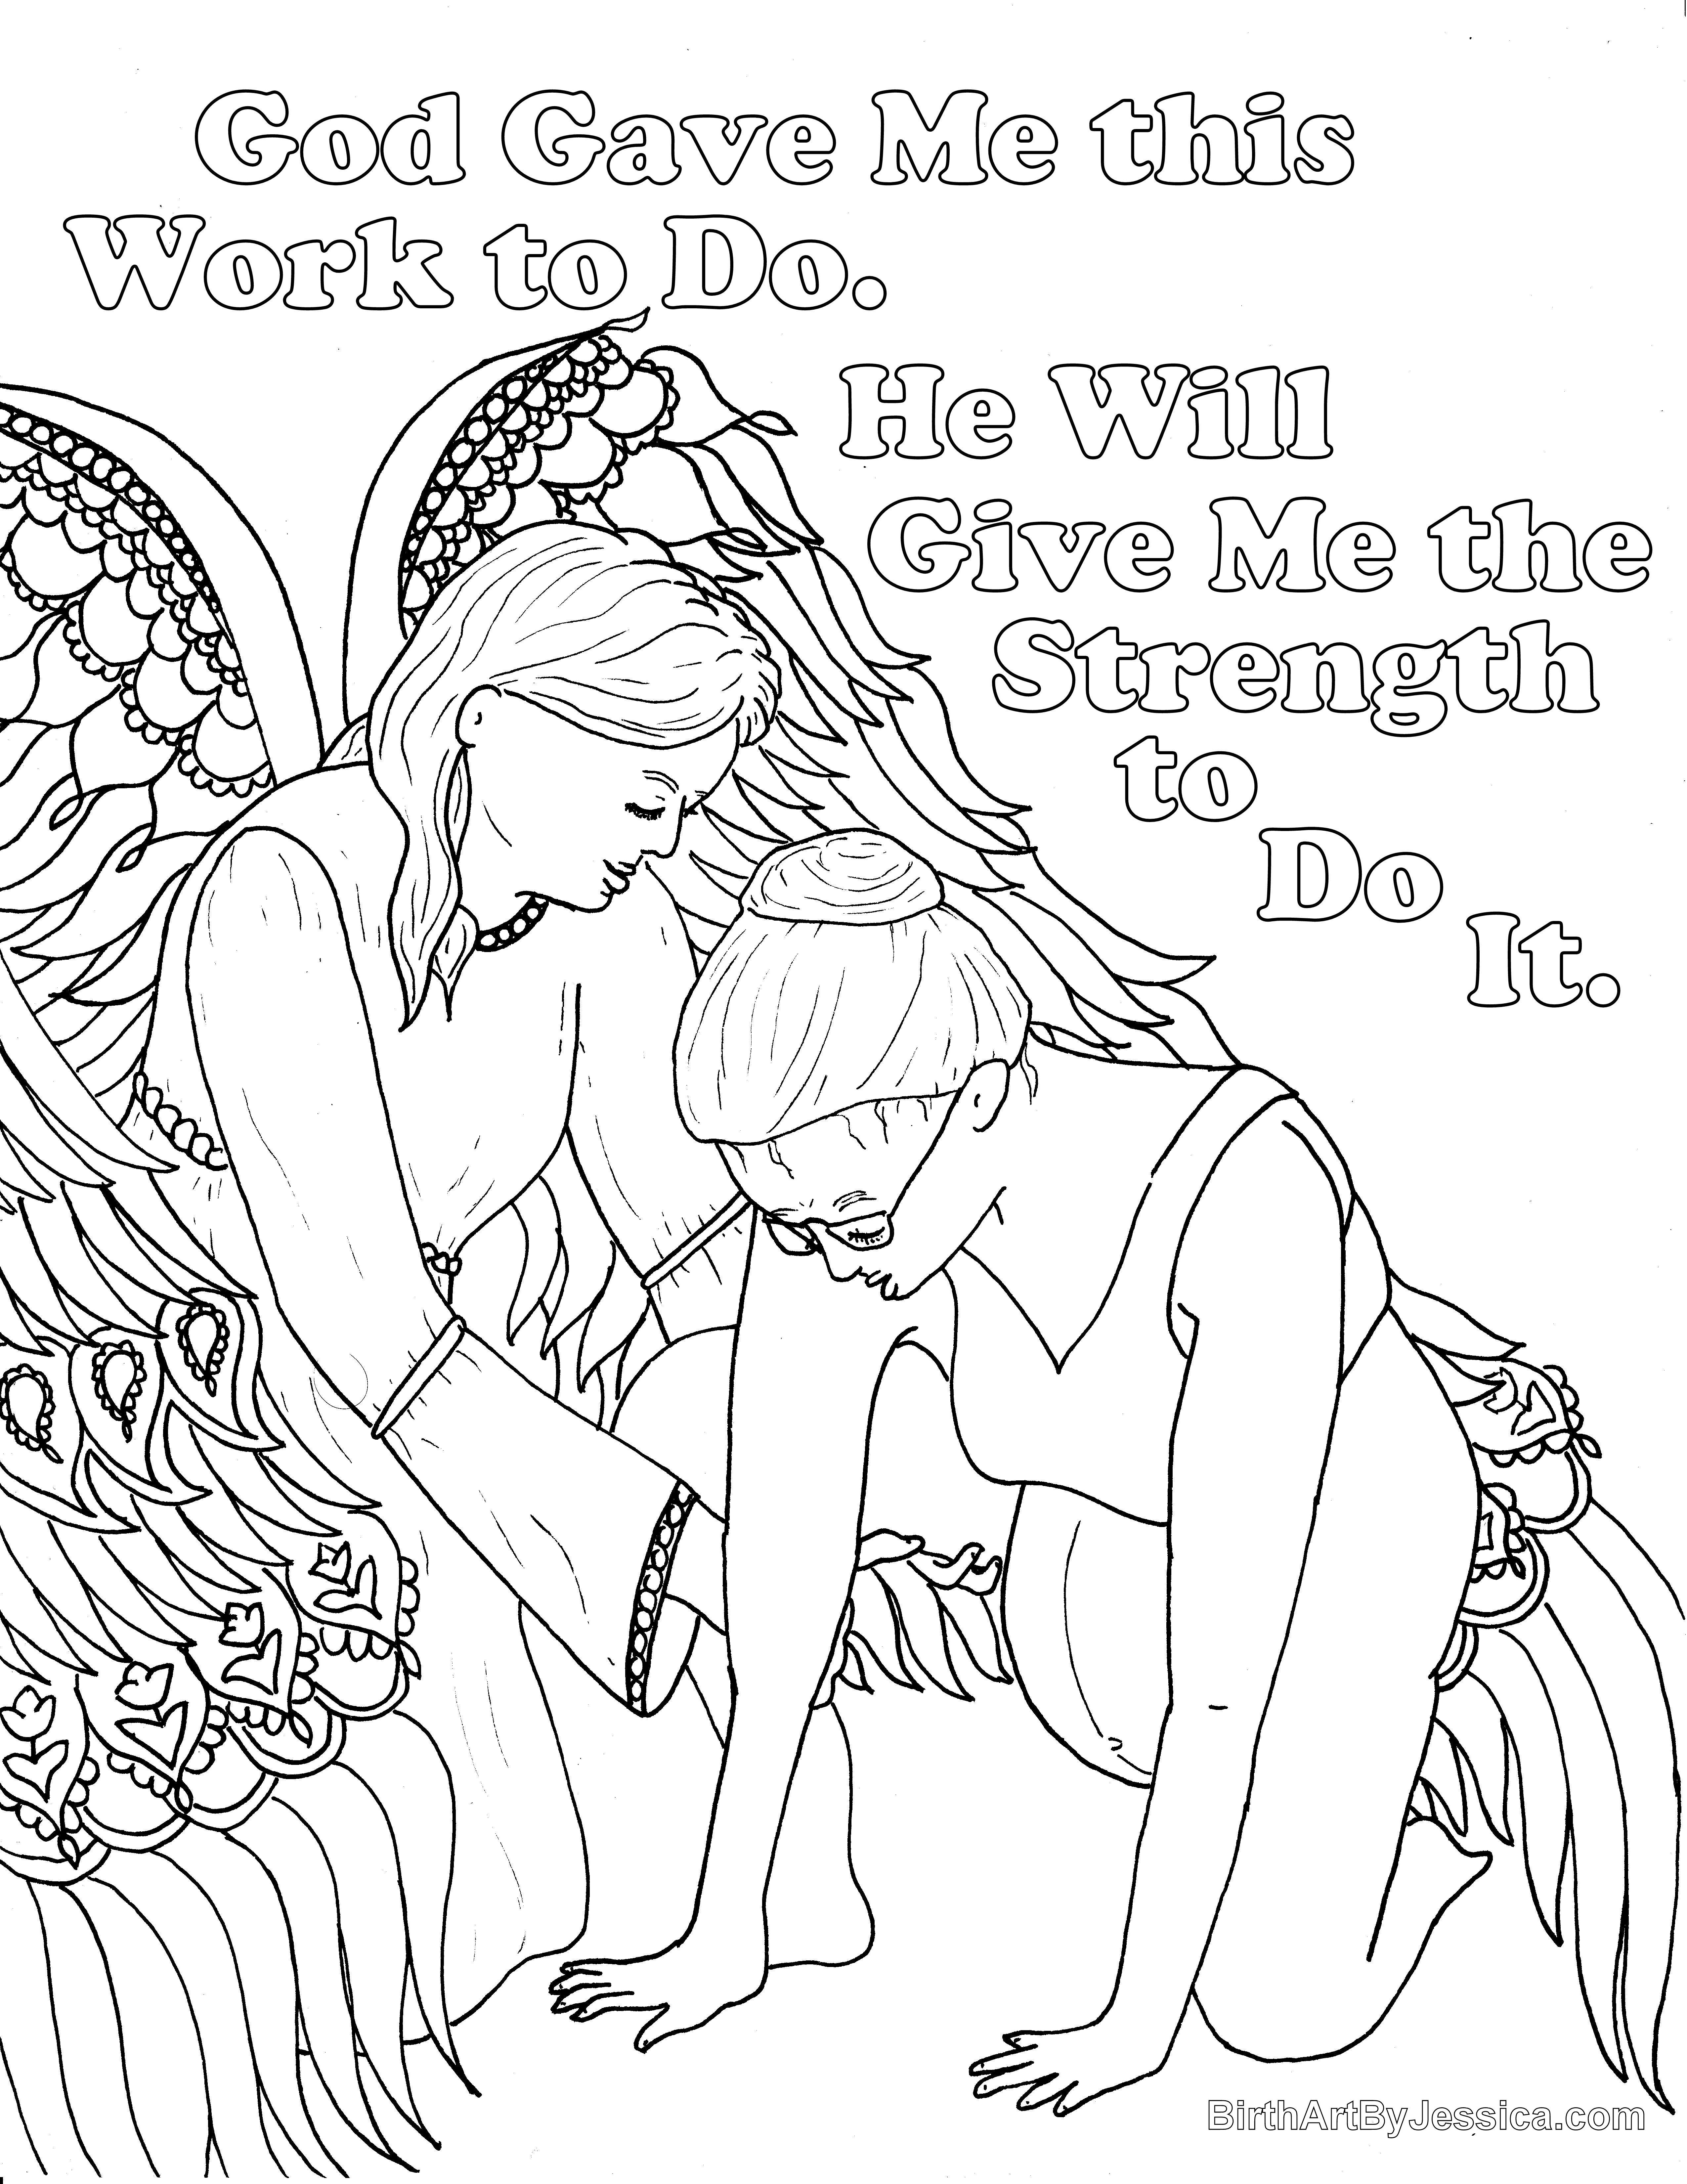 Birth Affirmation Coloring Page -Free Printable!- God will give me ...